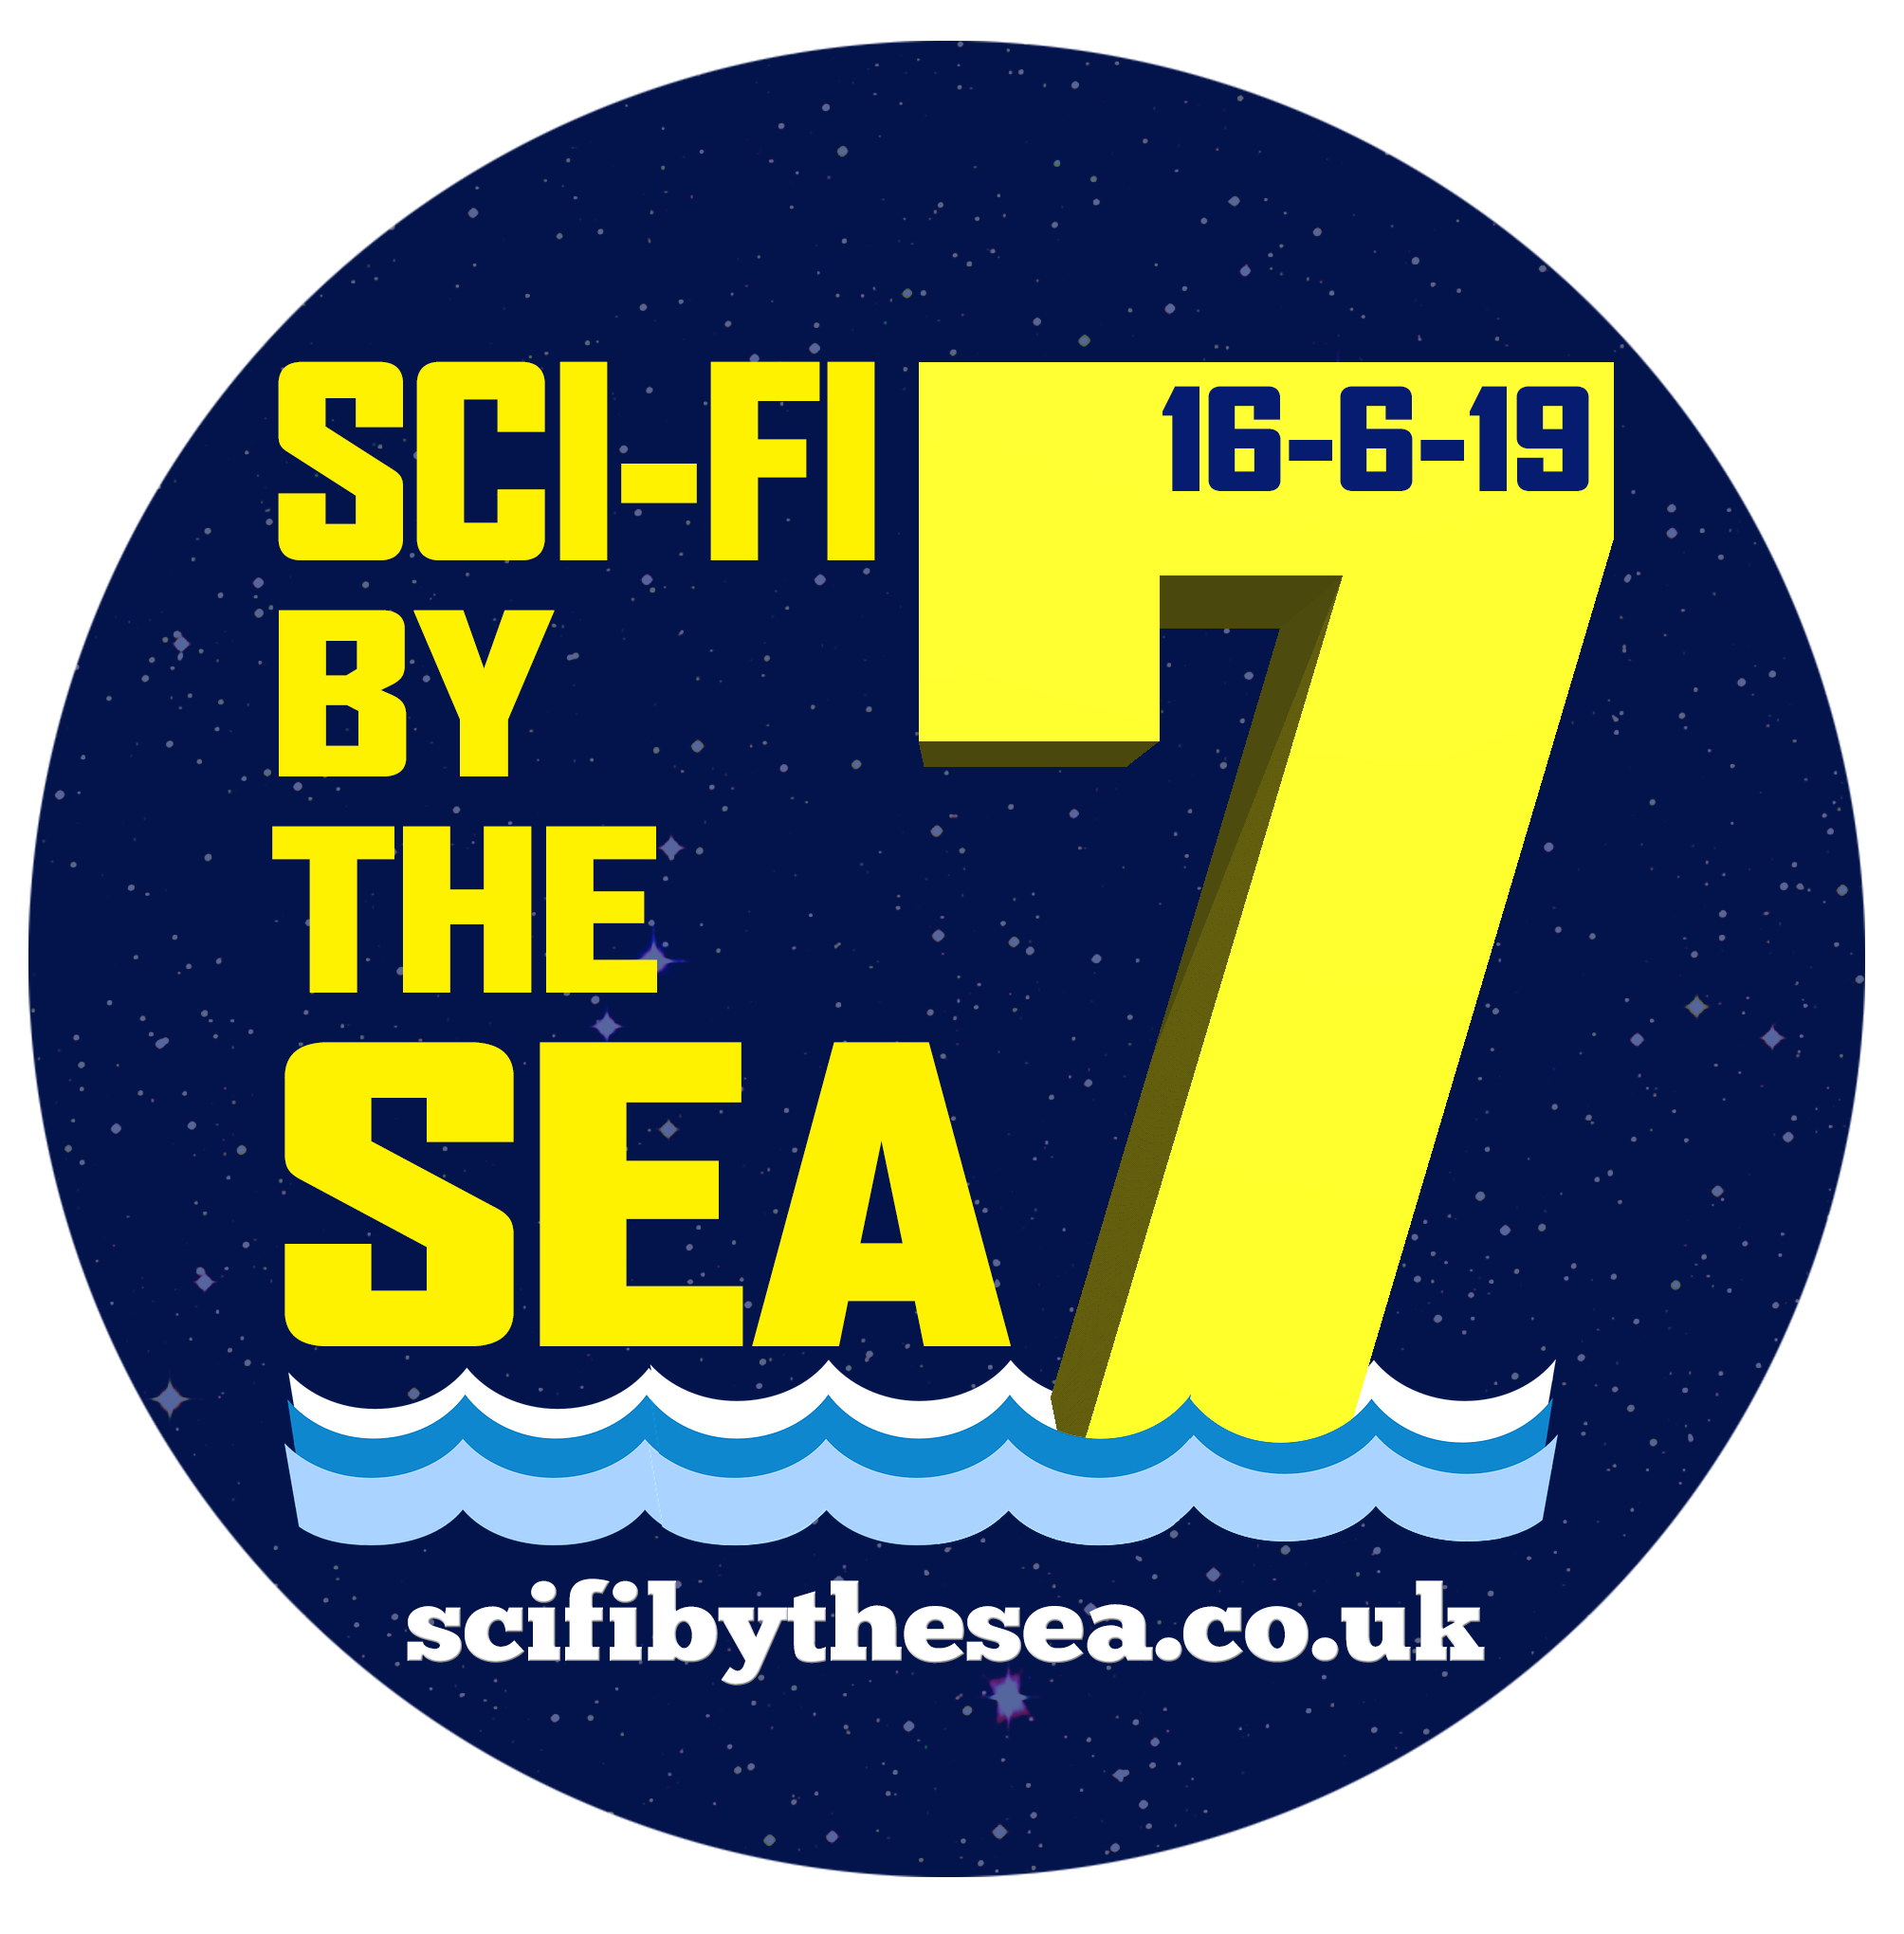 Sci-Fi by the Sea 7 - Sunday 16th June 2019 banner image